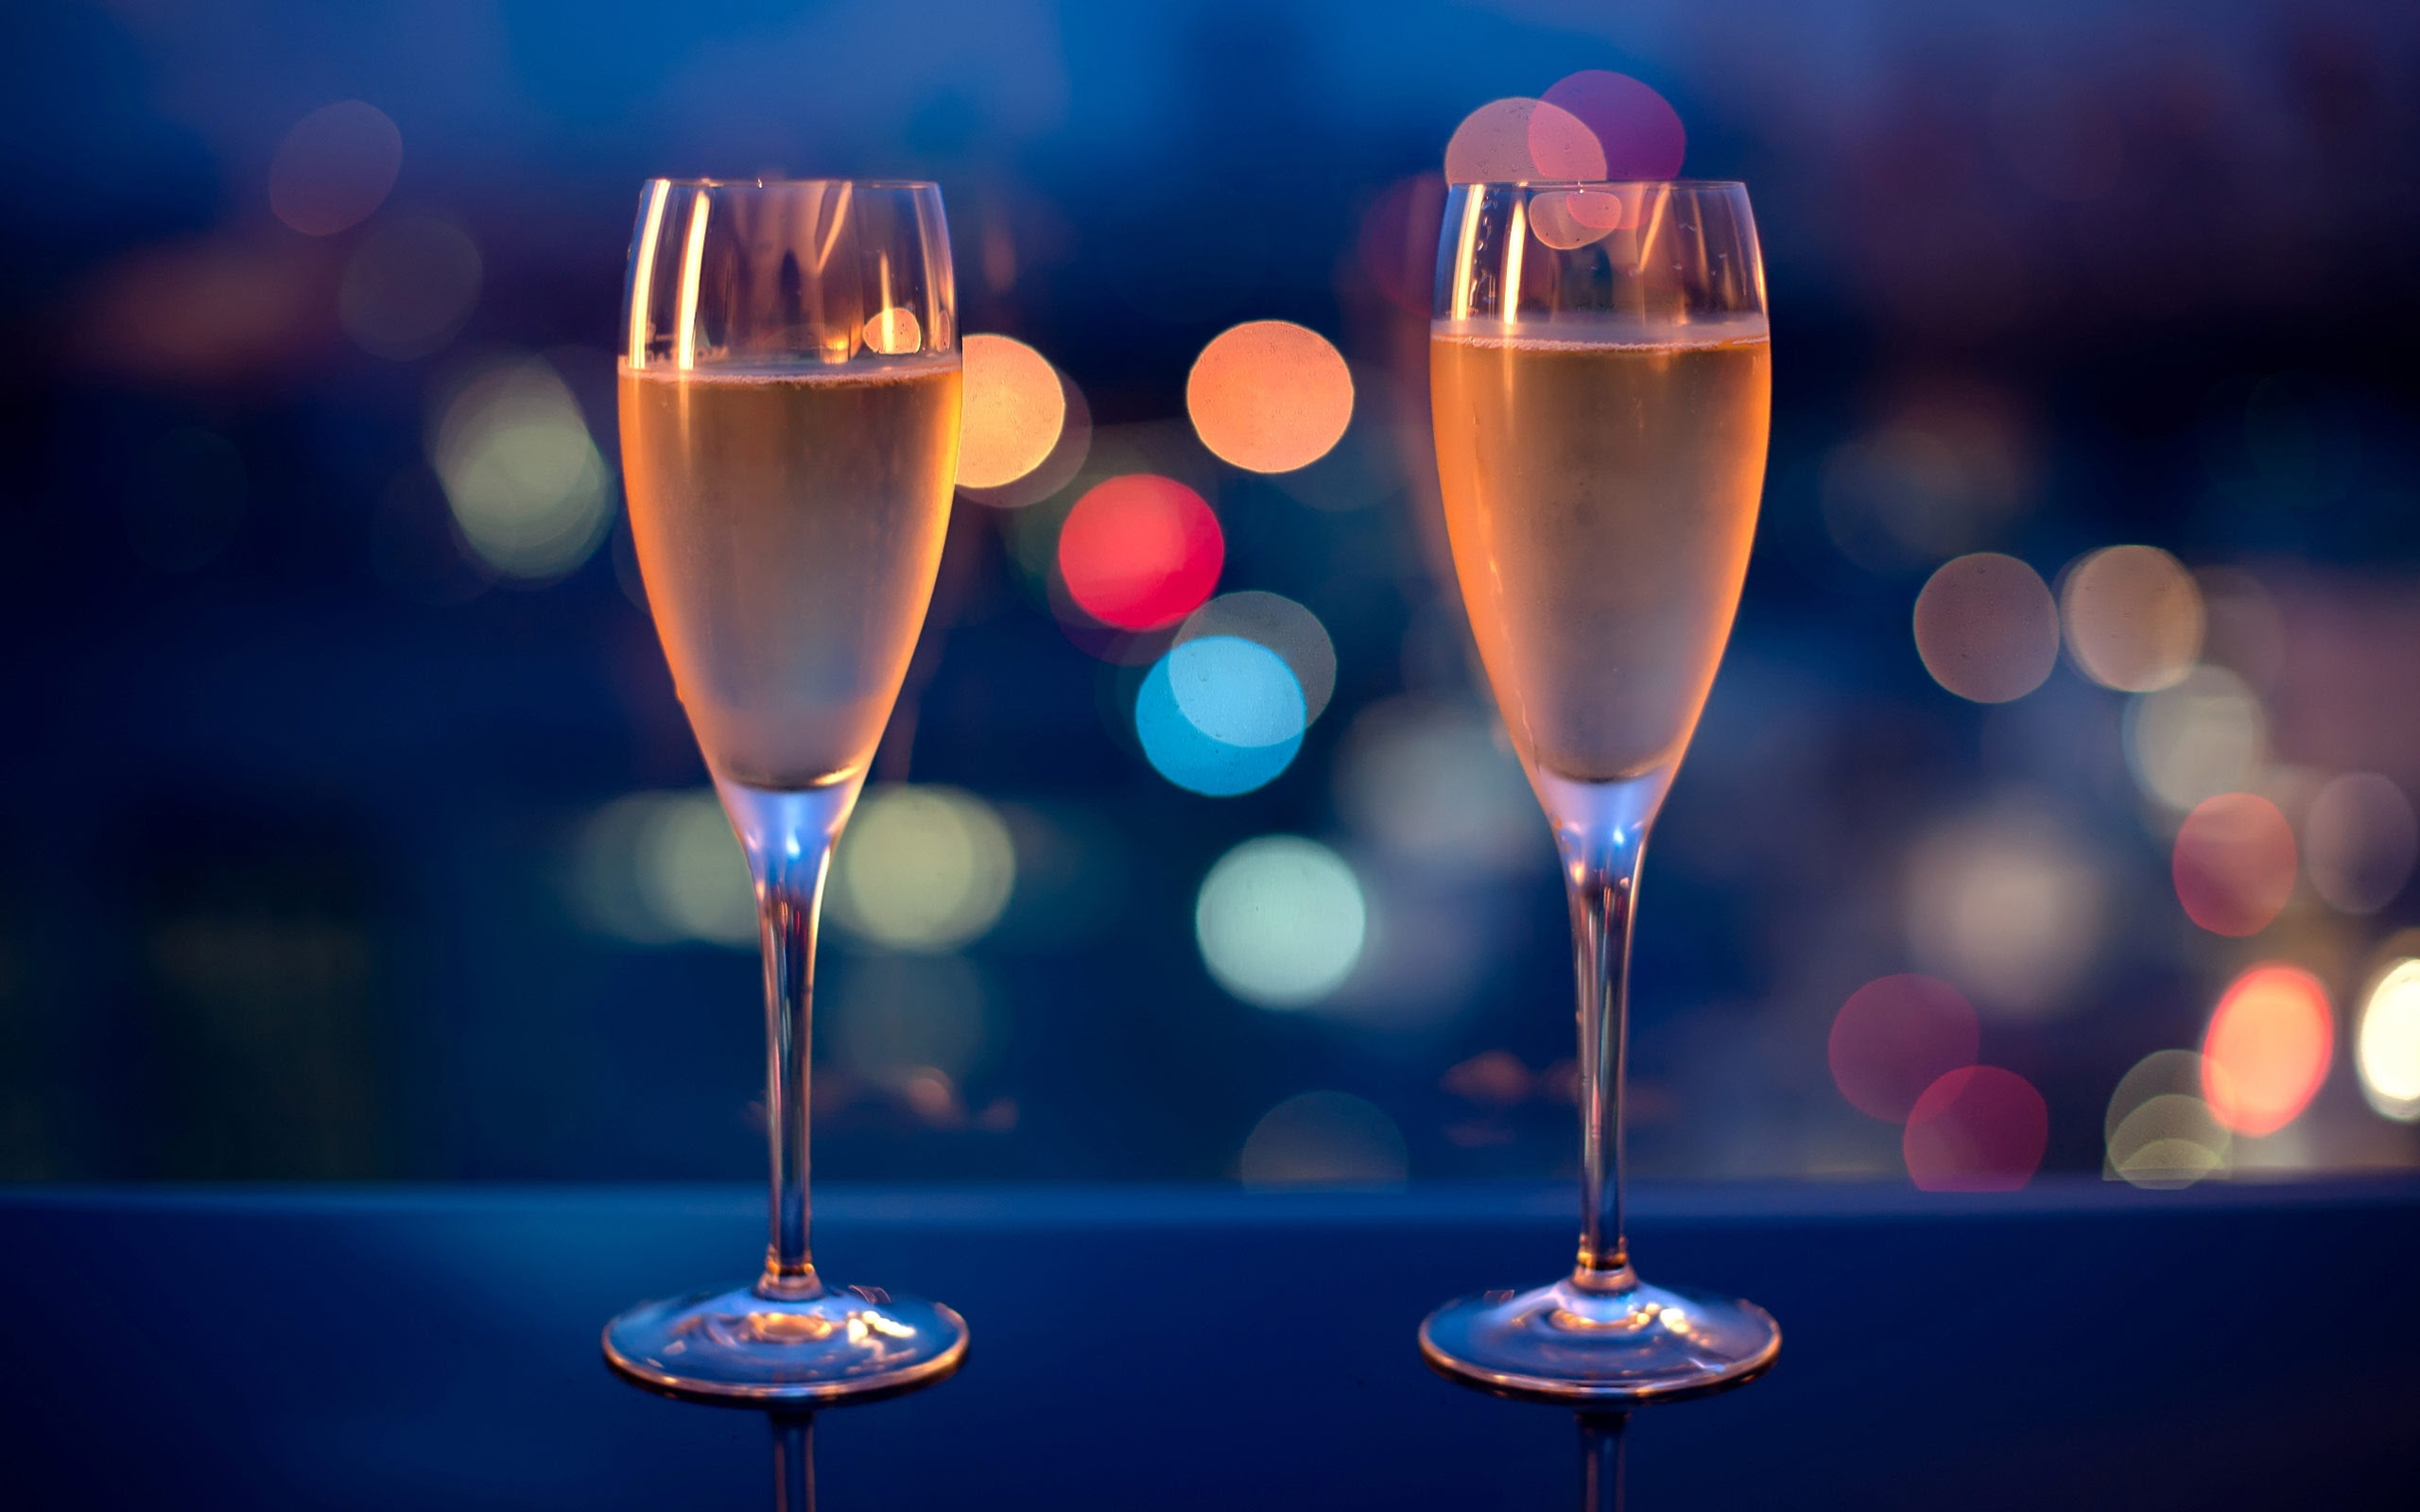 New Years Eve Background Wallpaper High Definition High